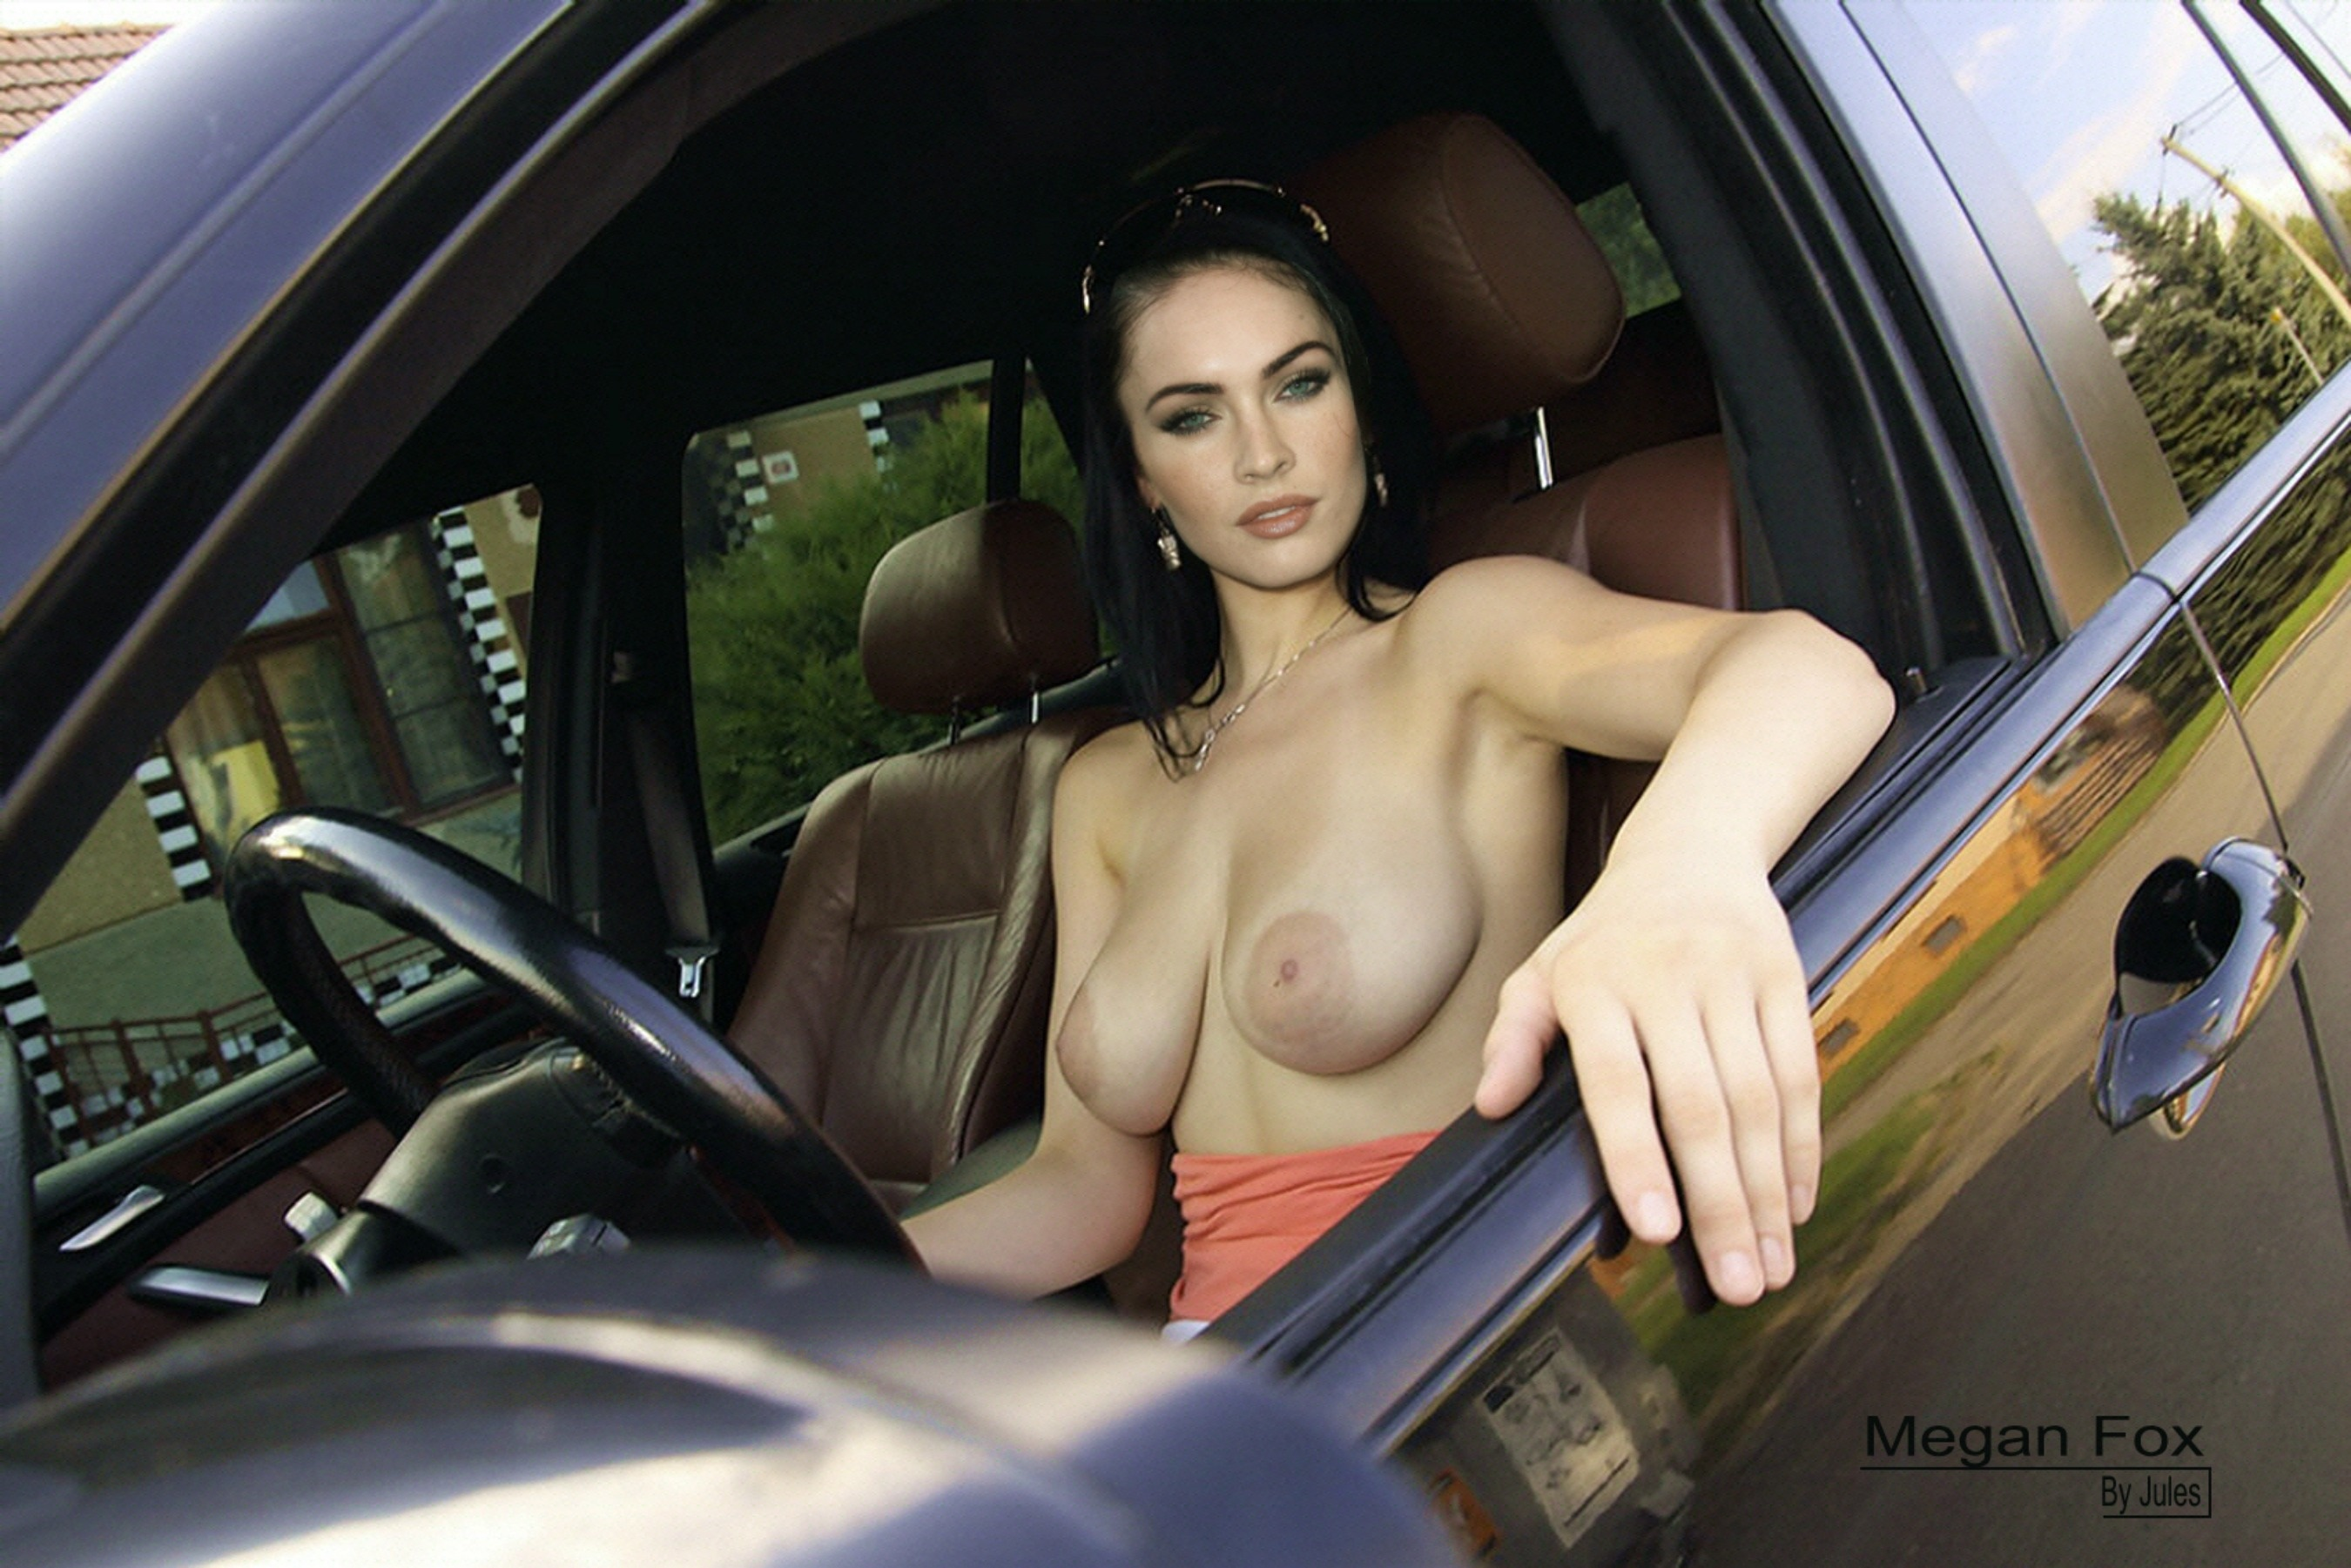 Wallpaper Megan Fox, Boobs, Car, Actress, Fake, Celebrity -9868